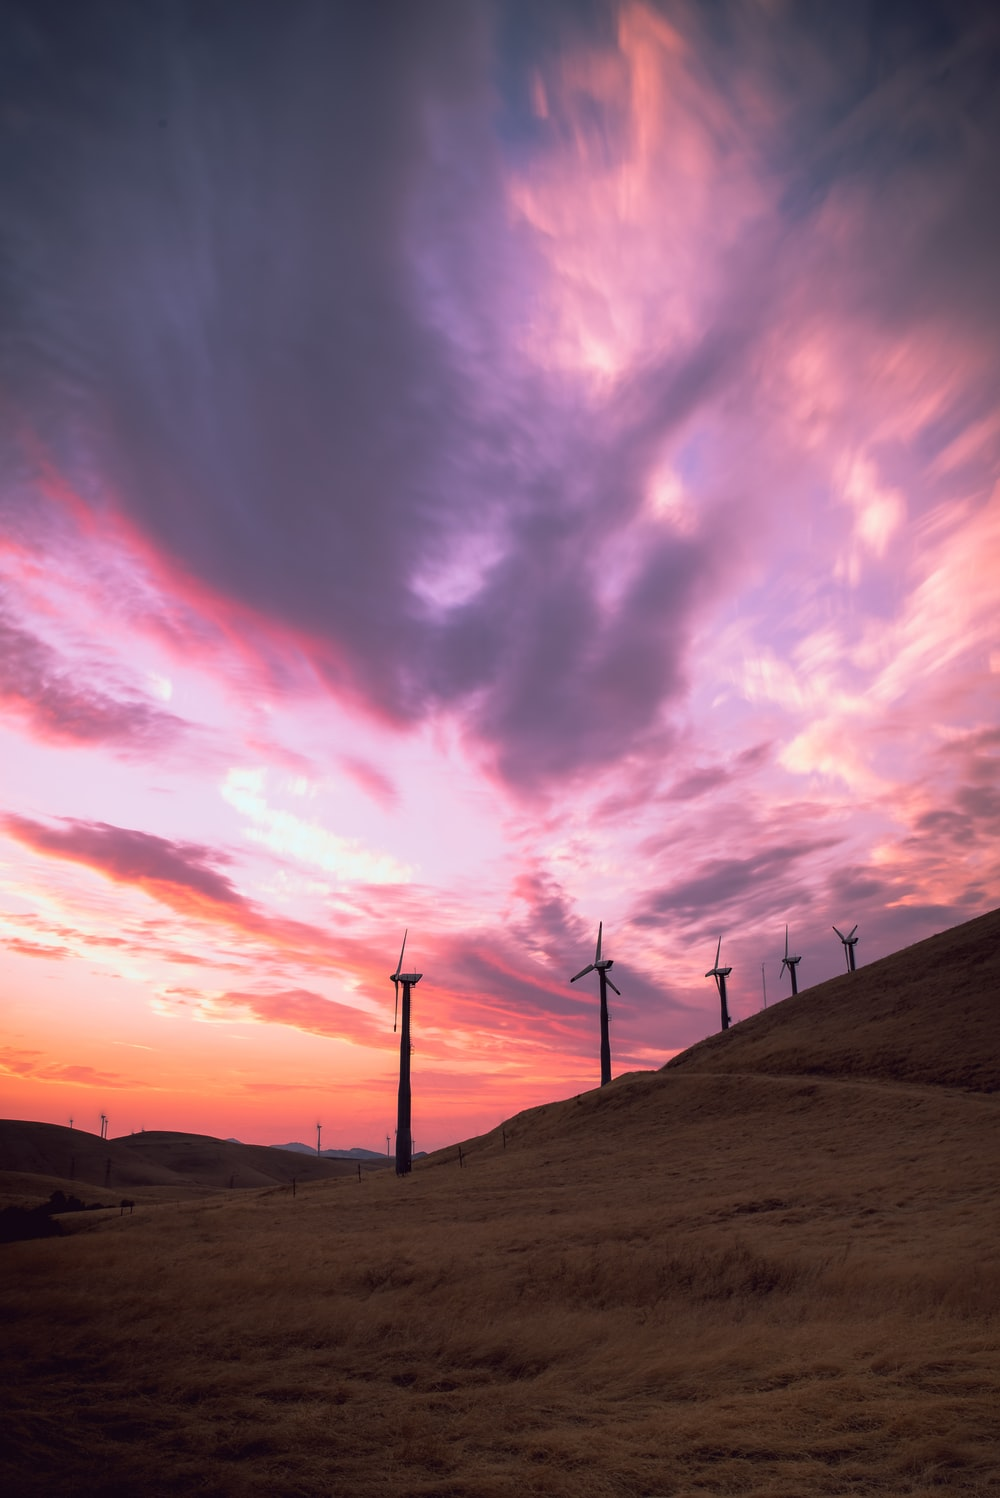 wind mills on hill under cloudy sky